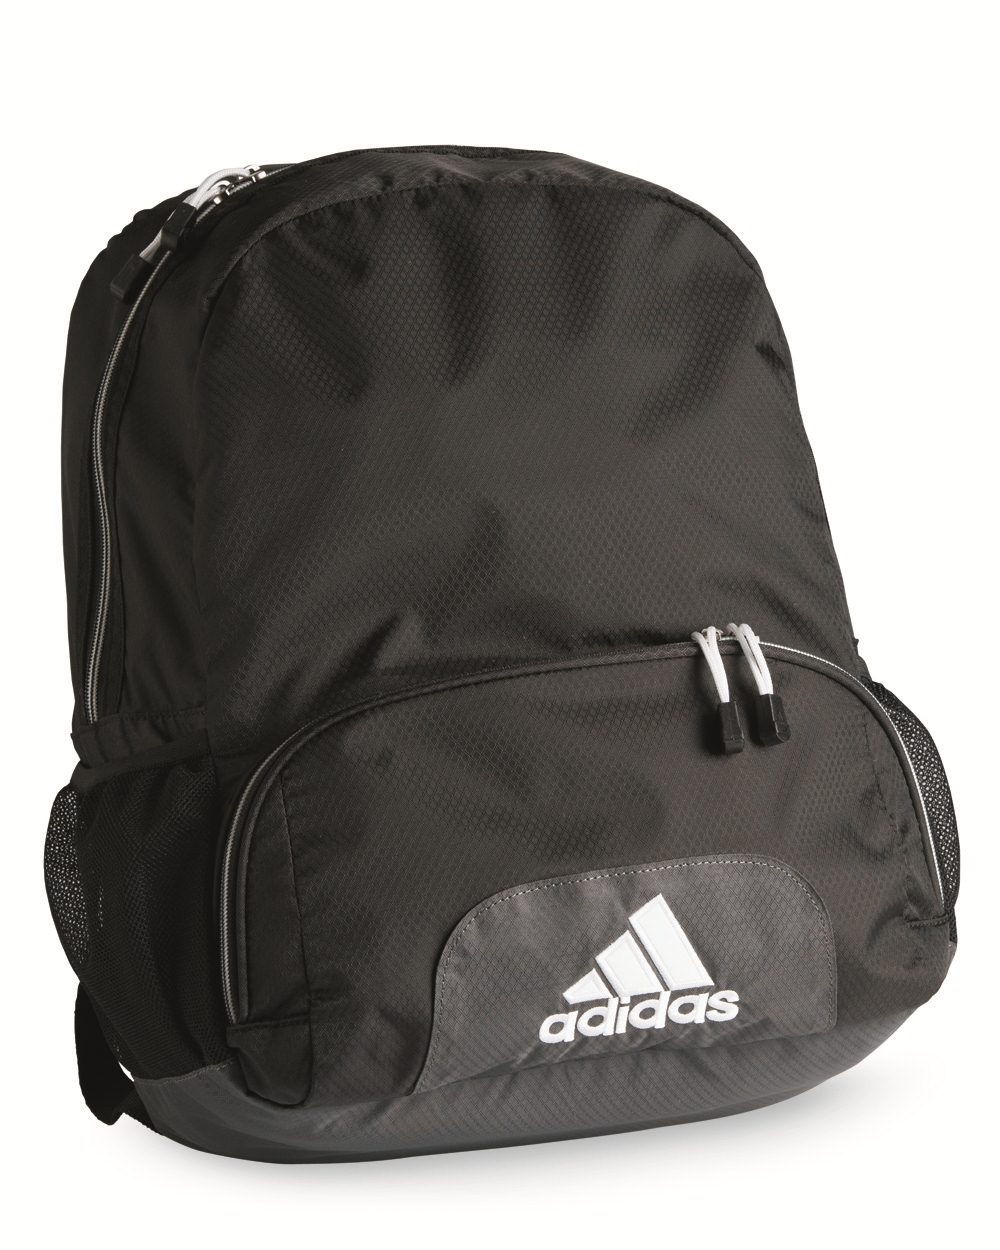 adidas University Backpack - A5702